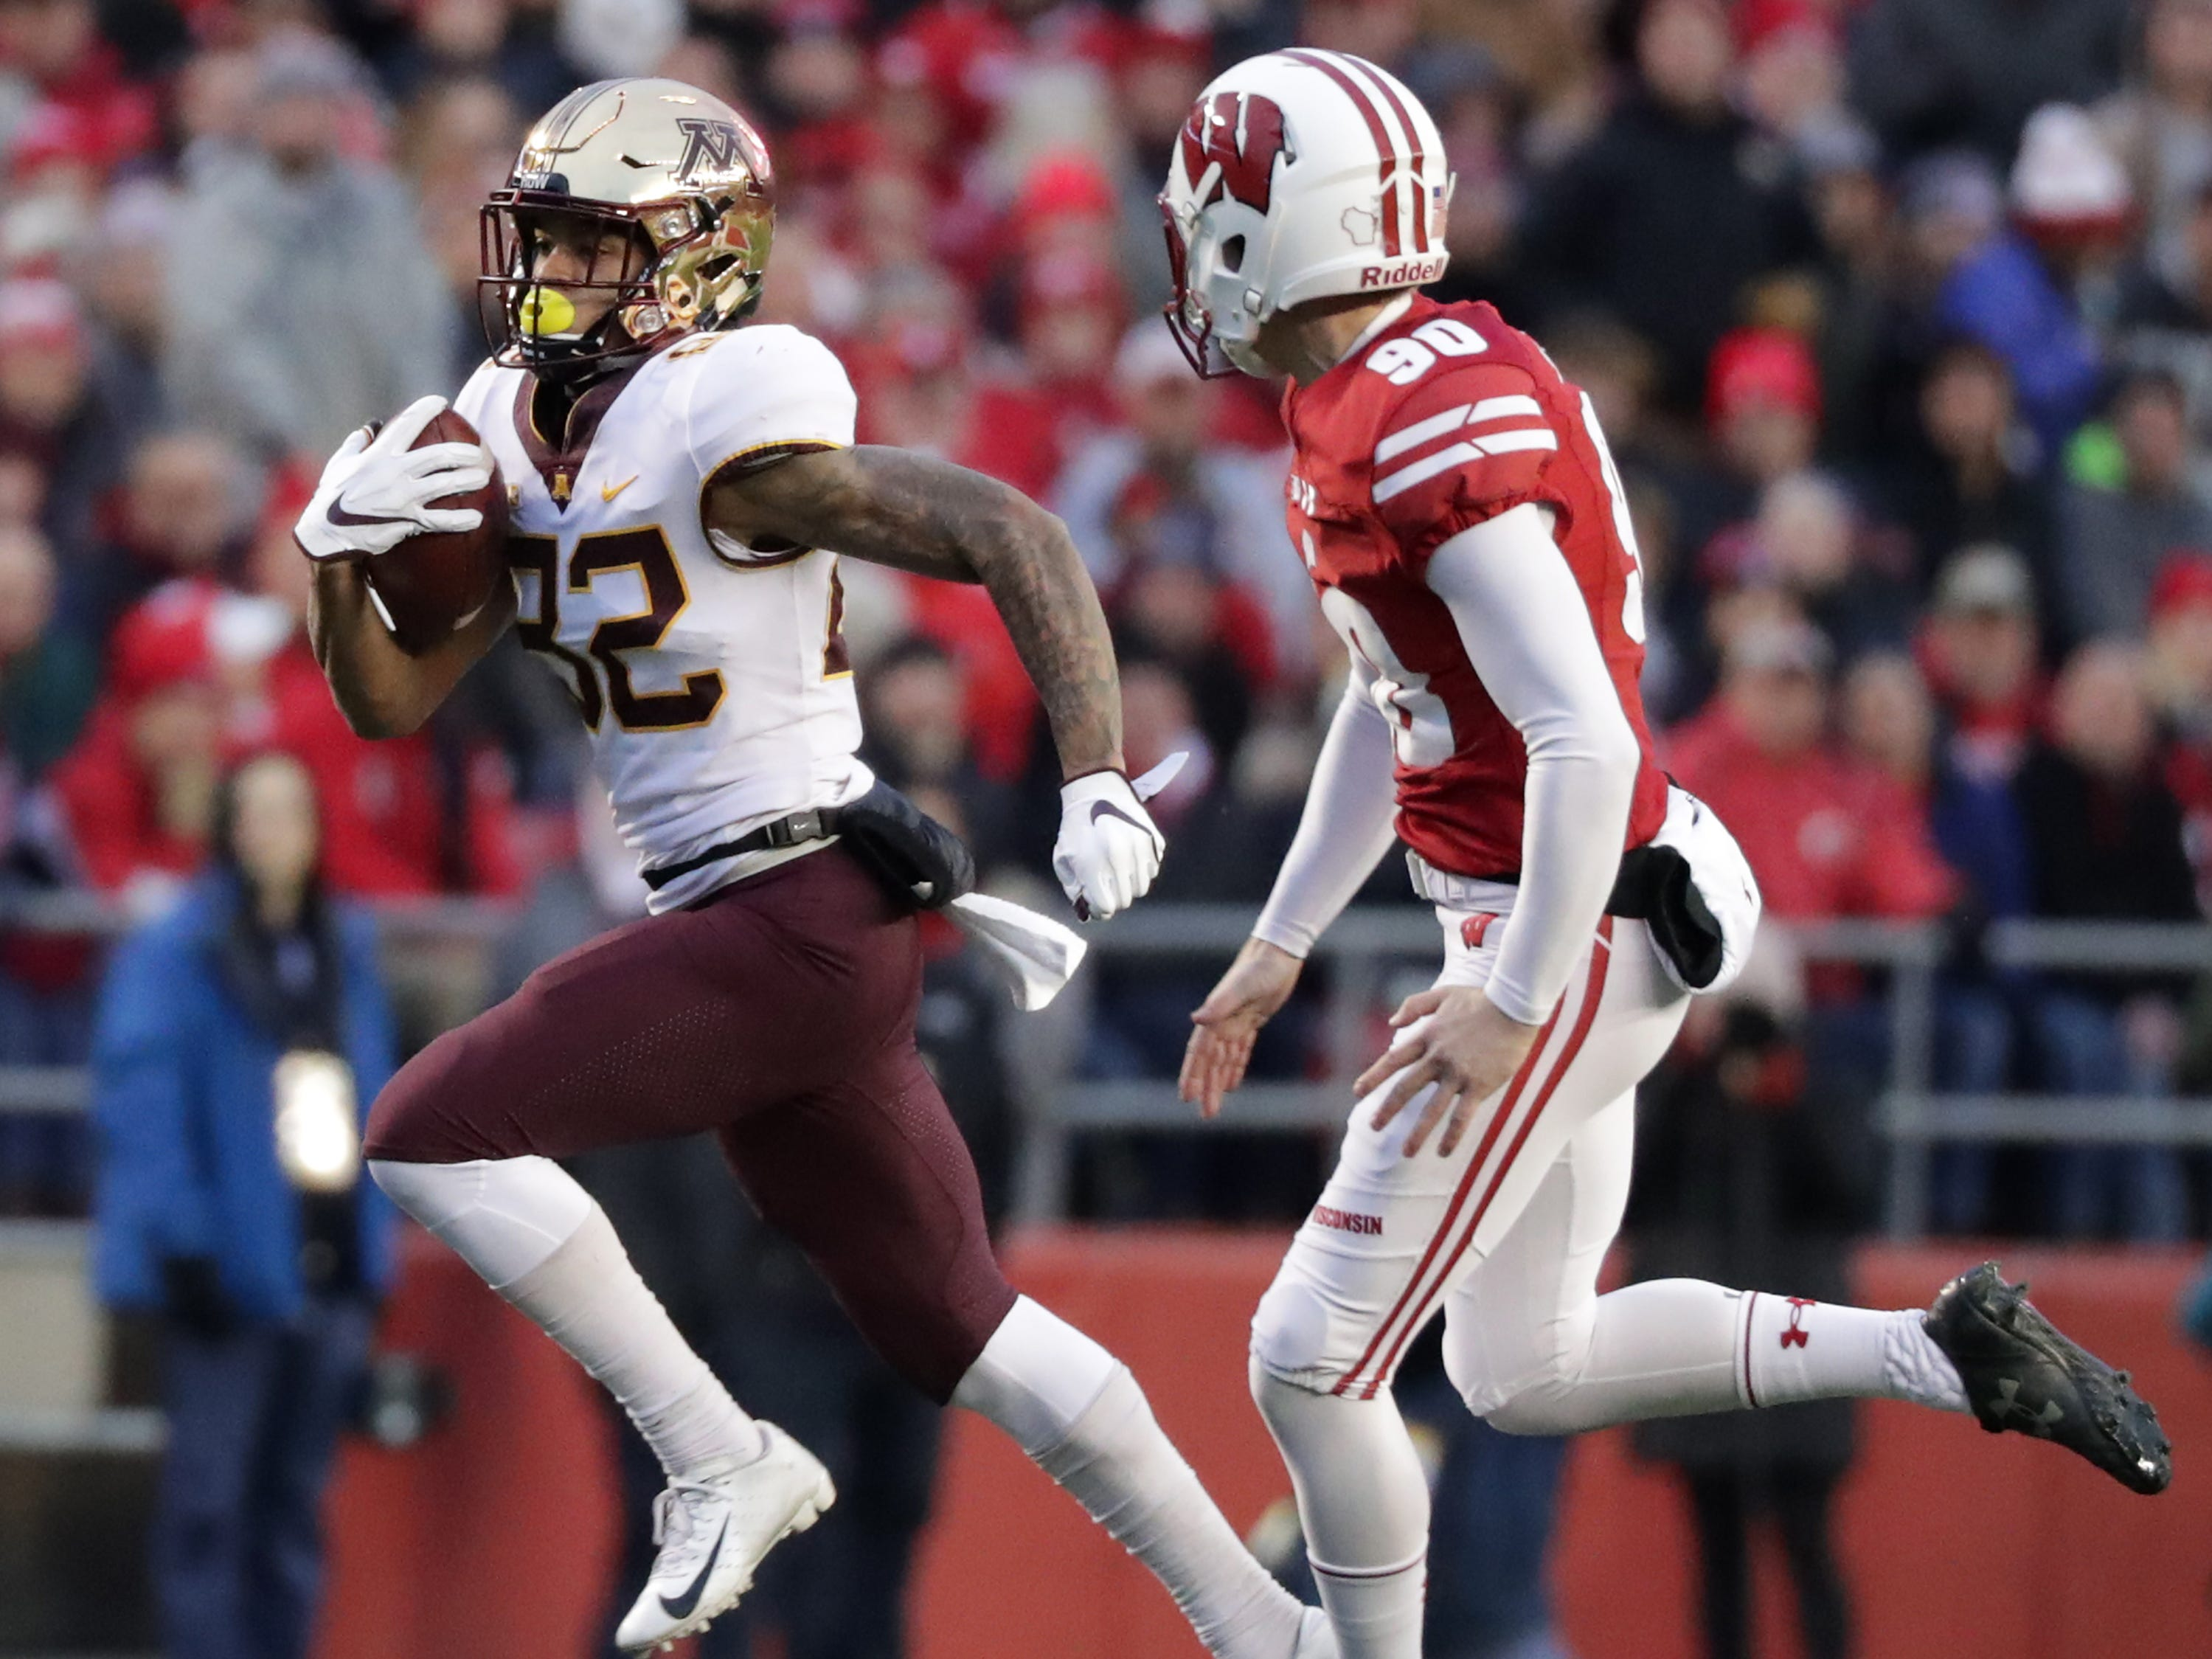 Demetrius Douglas of Minnesota outraces Wisconsin punter Connor Allen on a 69 yard punt return for a touchdown in the second quarter Saturday.